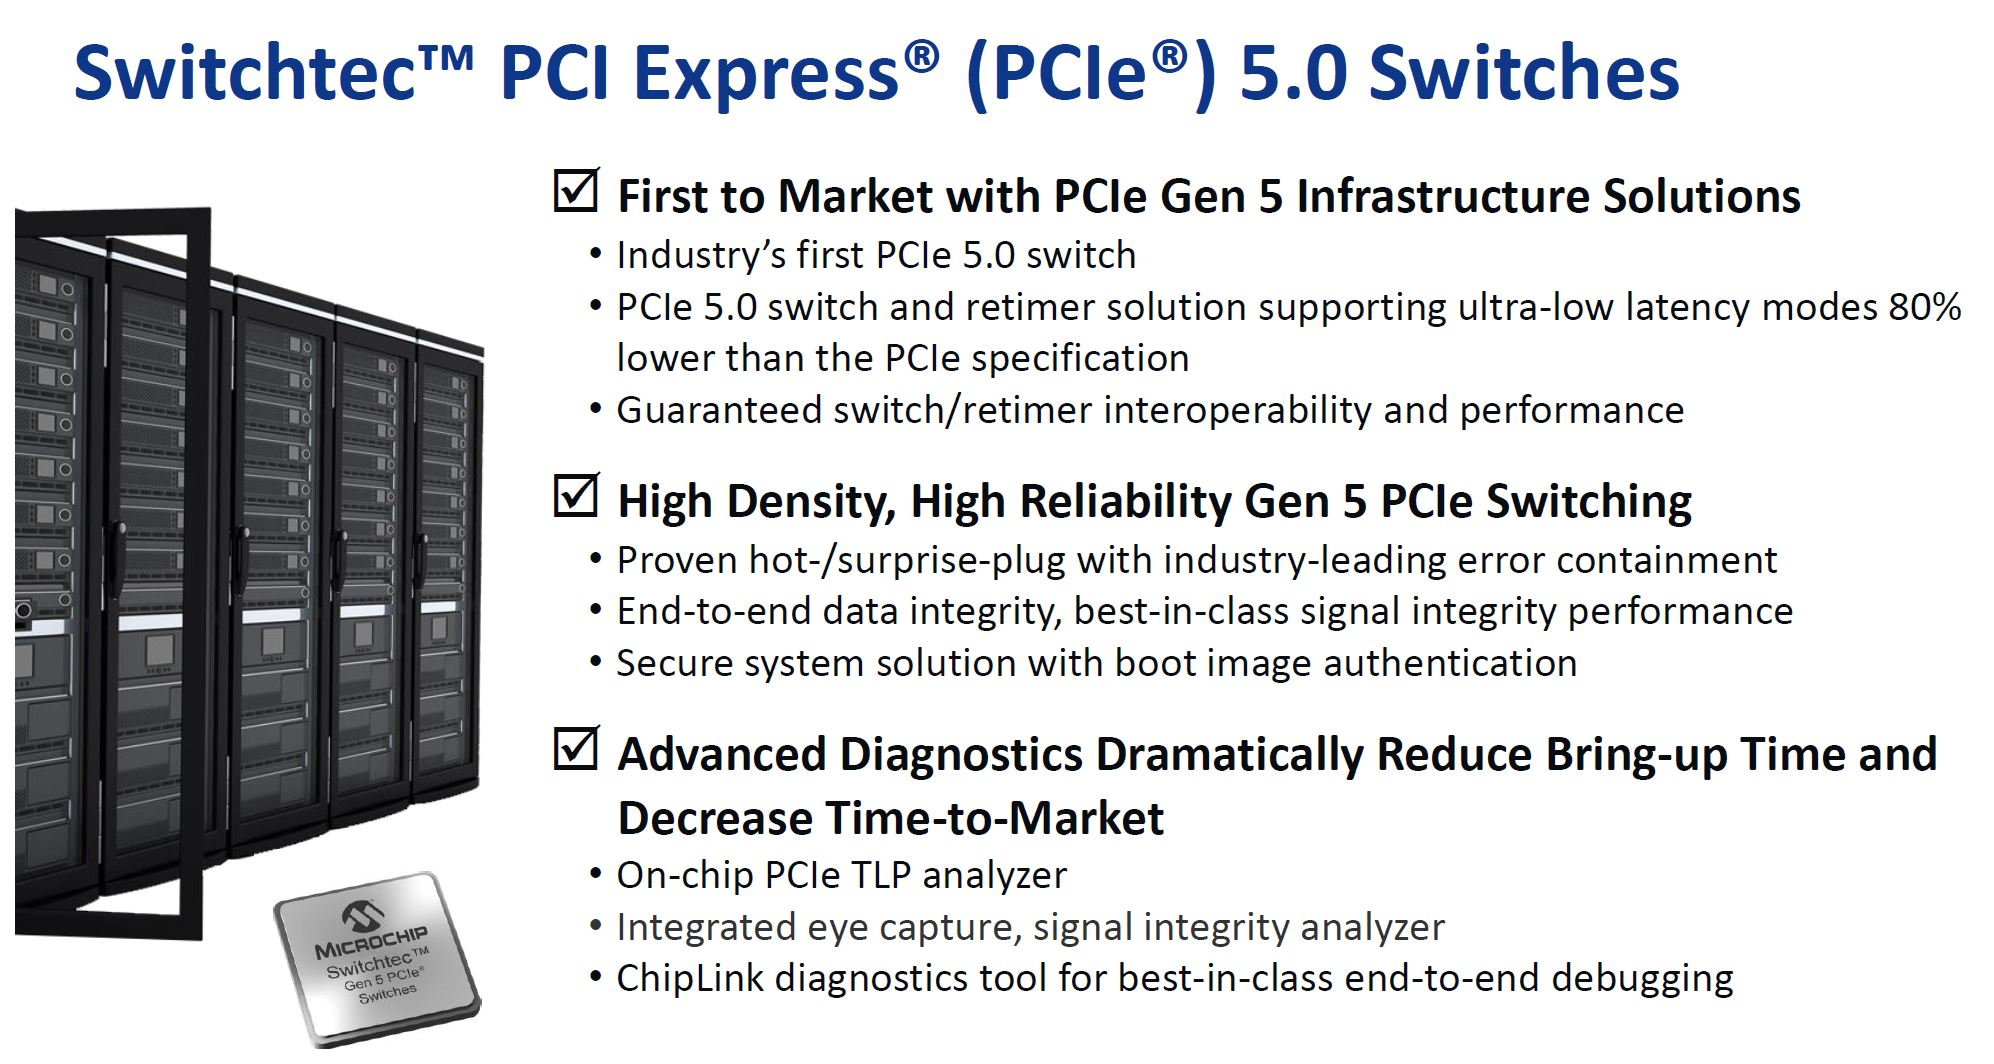 Microchip Switchtec PCIe 5.0 Switch Overview